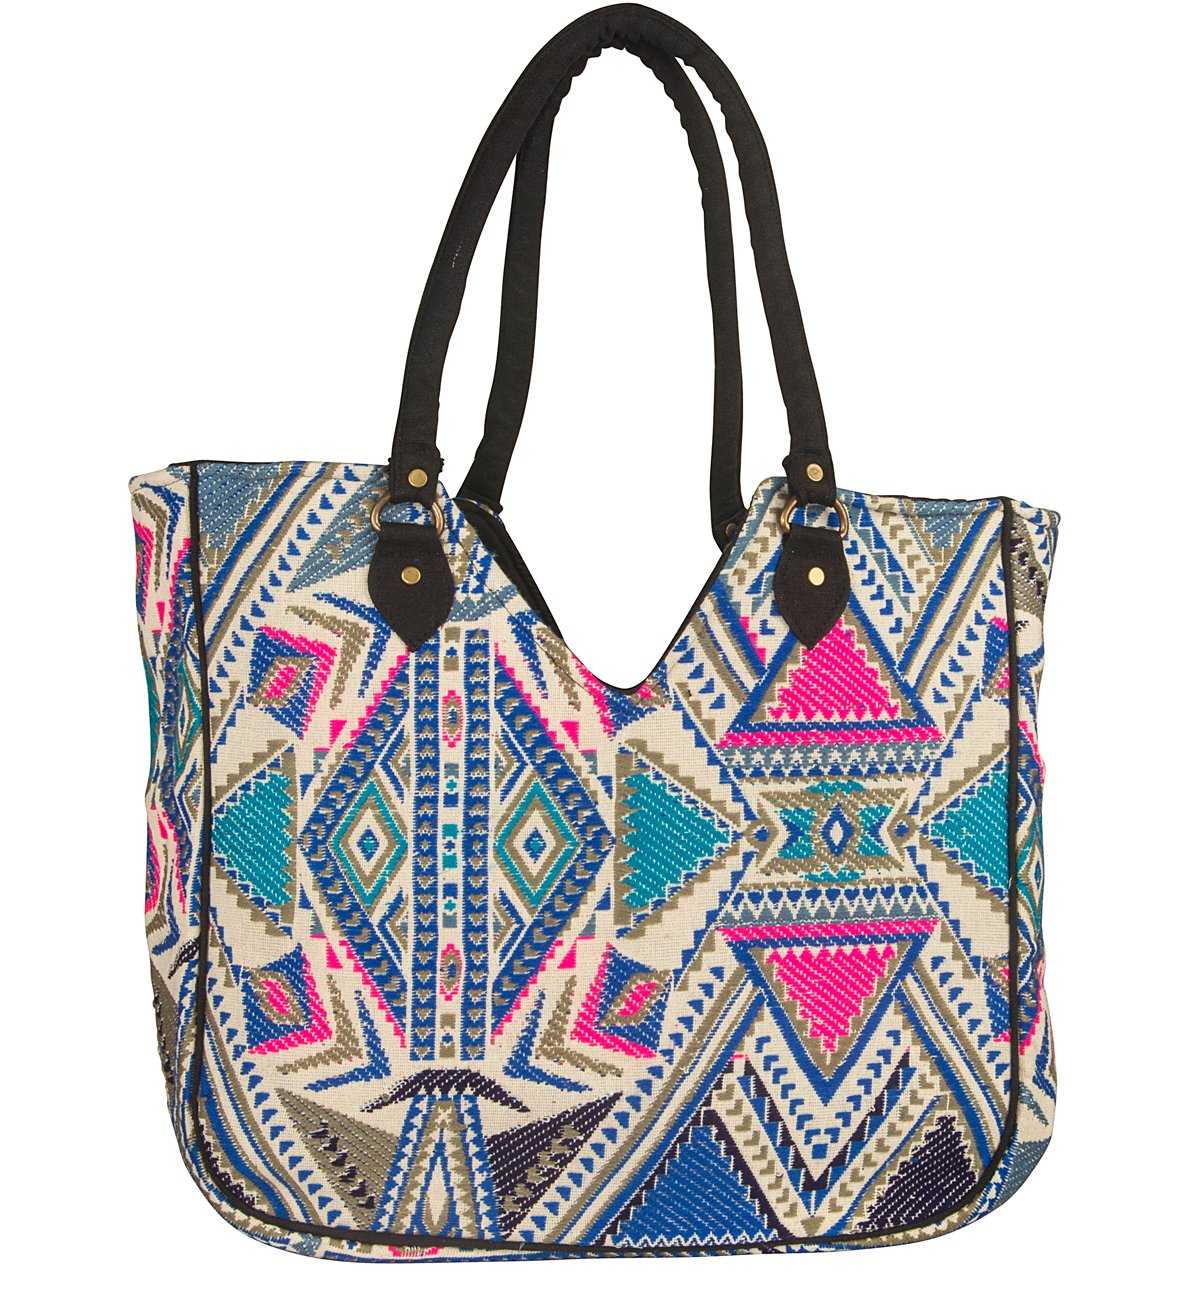 Woven Women Tote Blue Large Shoulder Bag Beach Summer Fashion Spring School Every day Floral Geometric